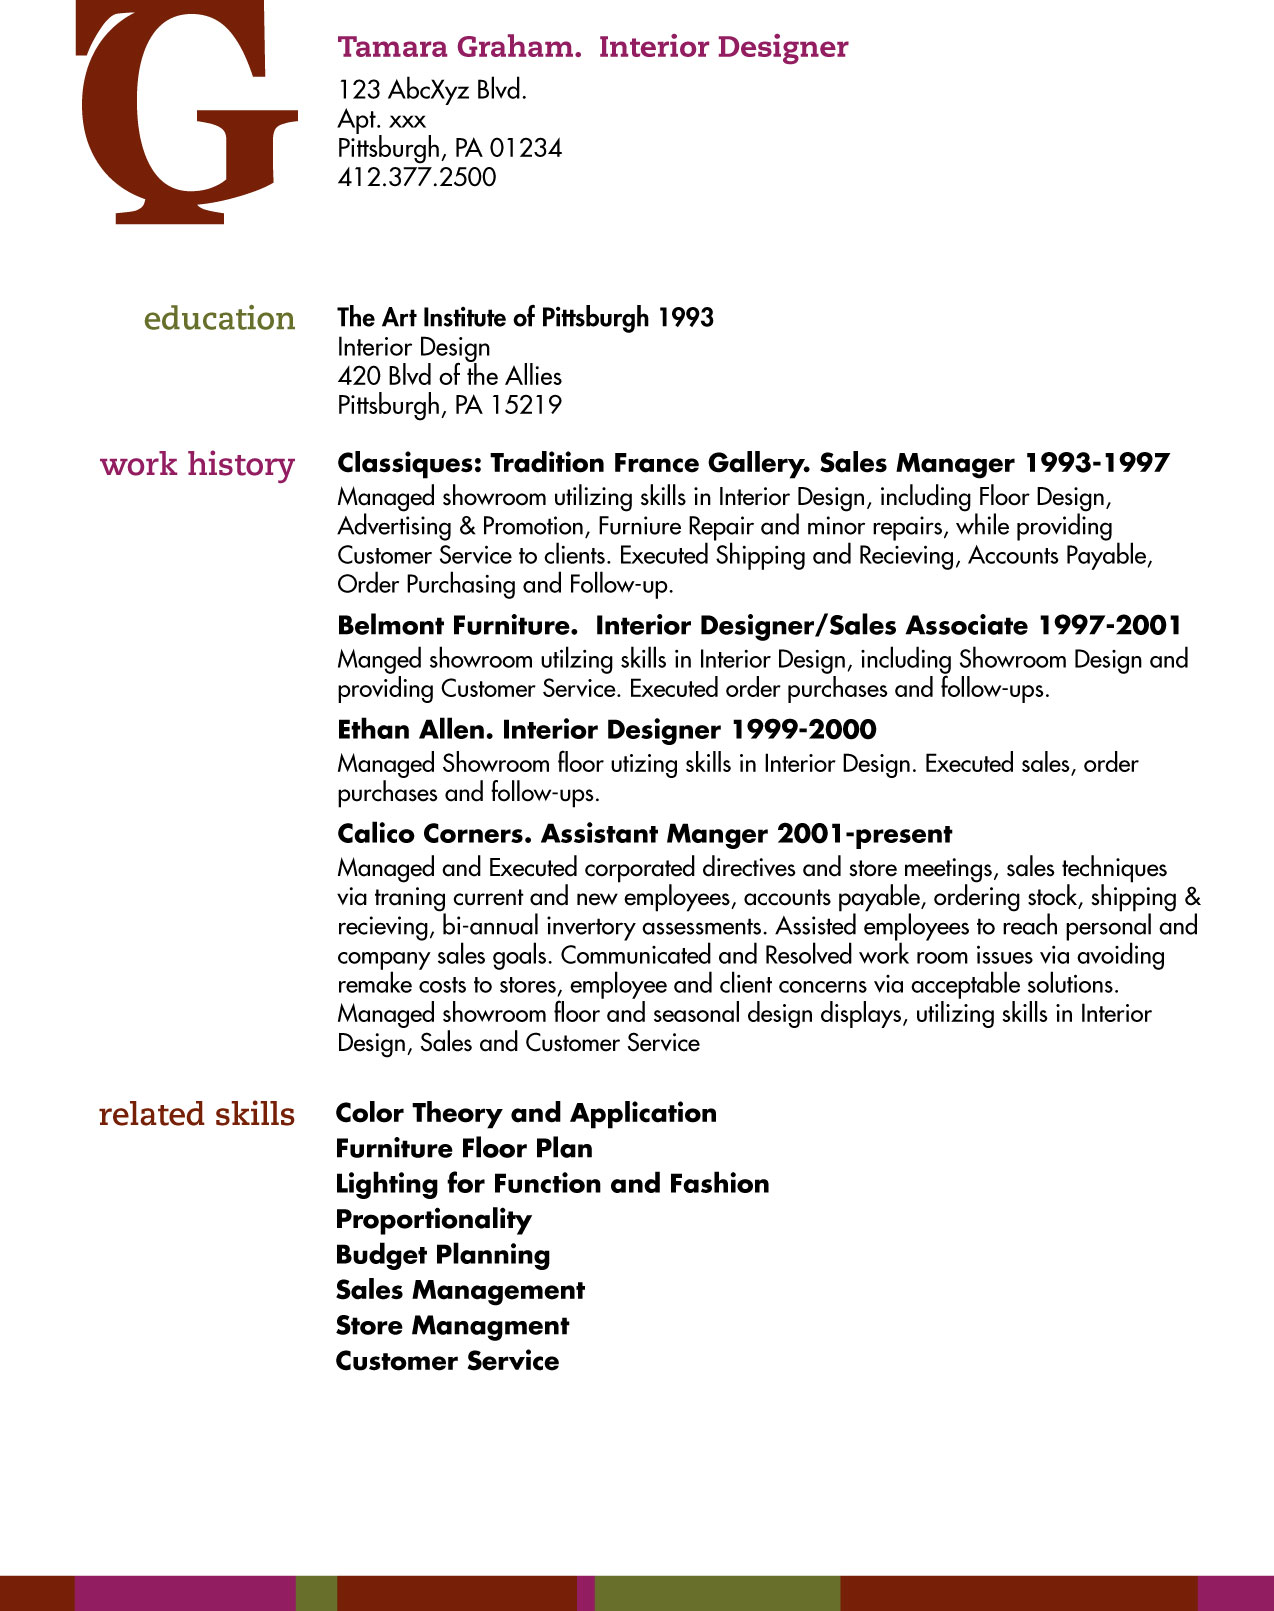 resume for interior designer graphic design vision resume for interior designer 0447